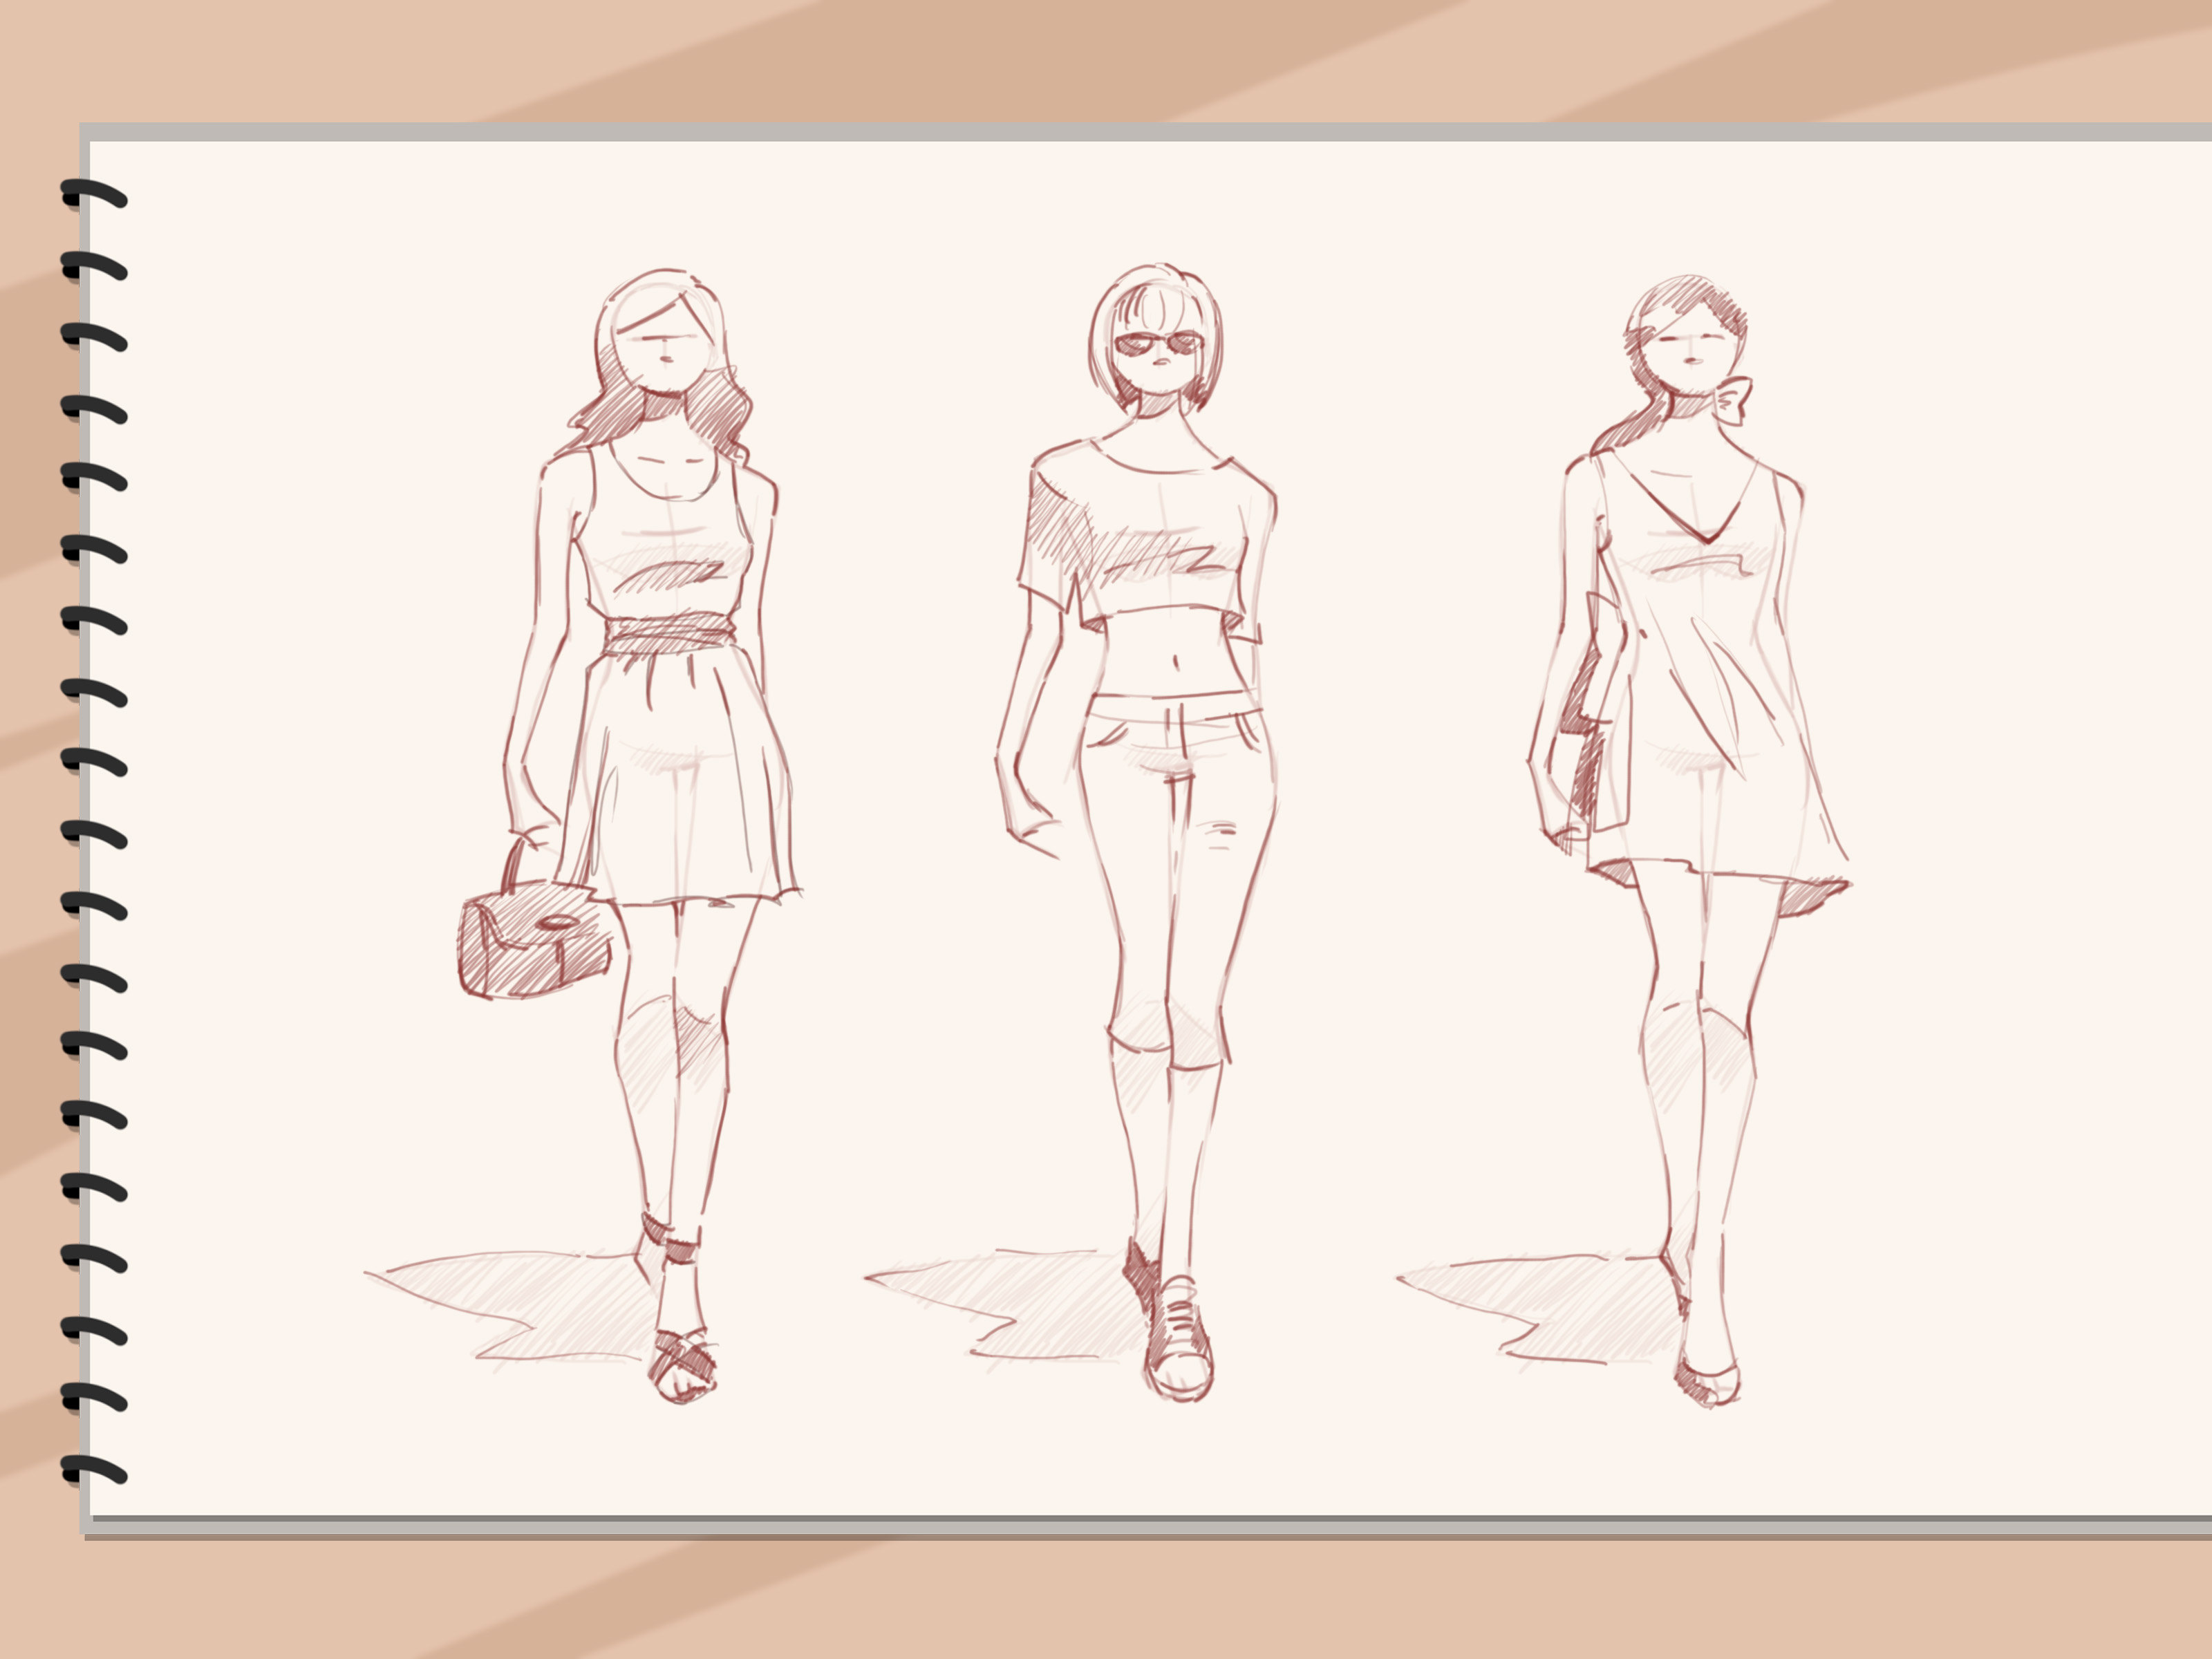 3200x2400 How To Sketch Fashion Designs 5 Steps (With Pictures)